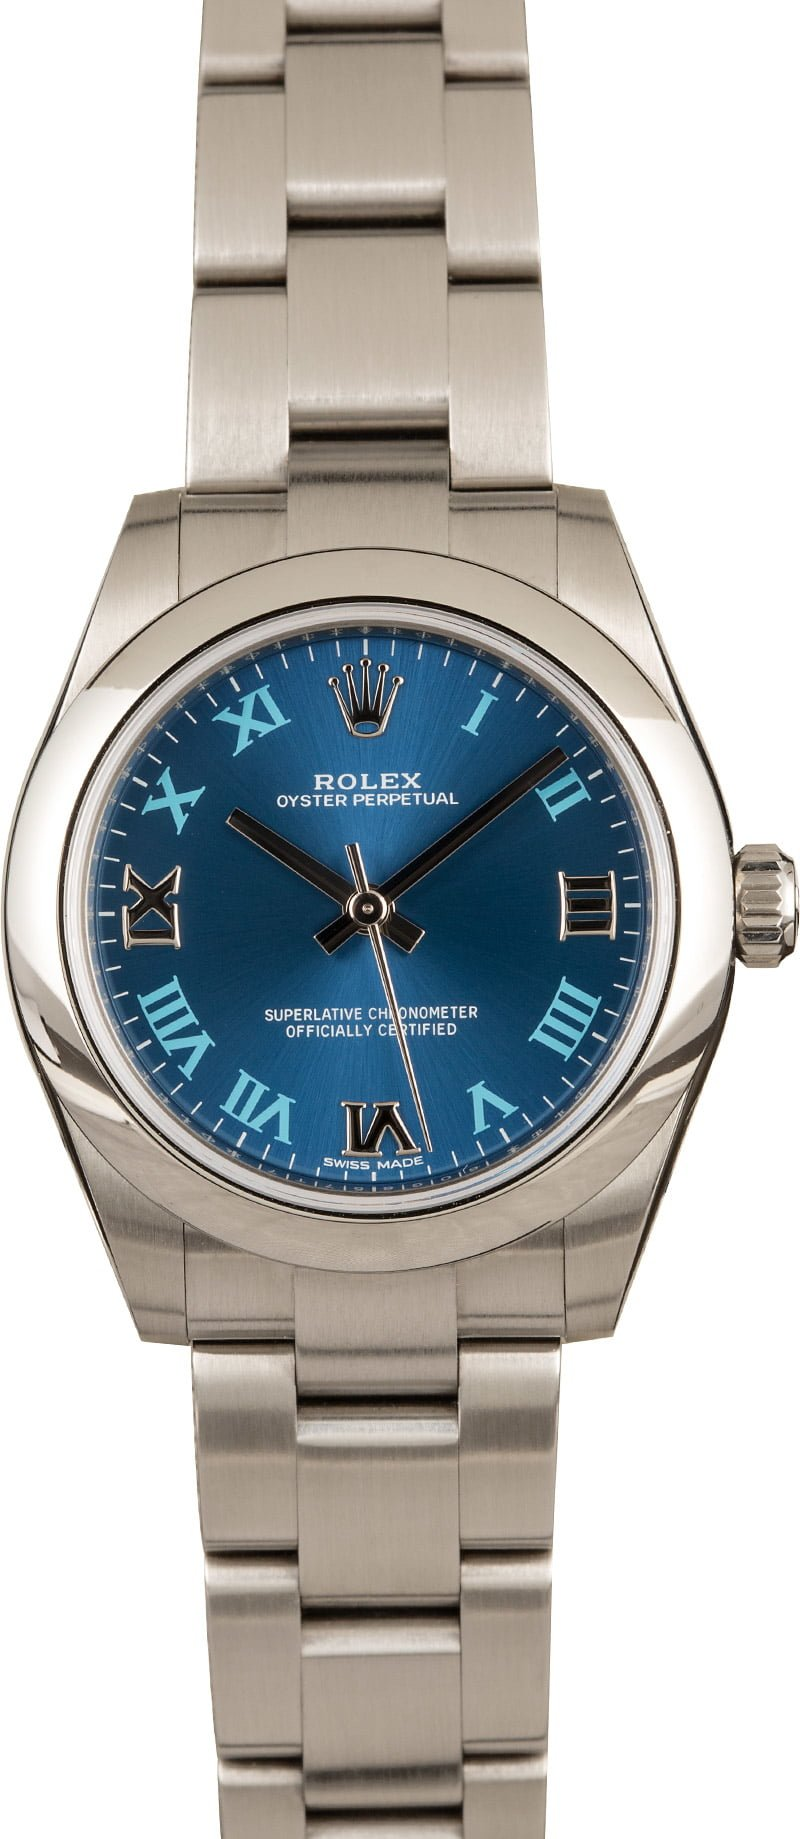 Our Favorite Rare Colorful Rolex Dials Midsize Oyster Perpetual 177200 Blue Roman Dial